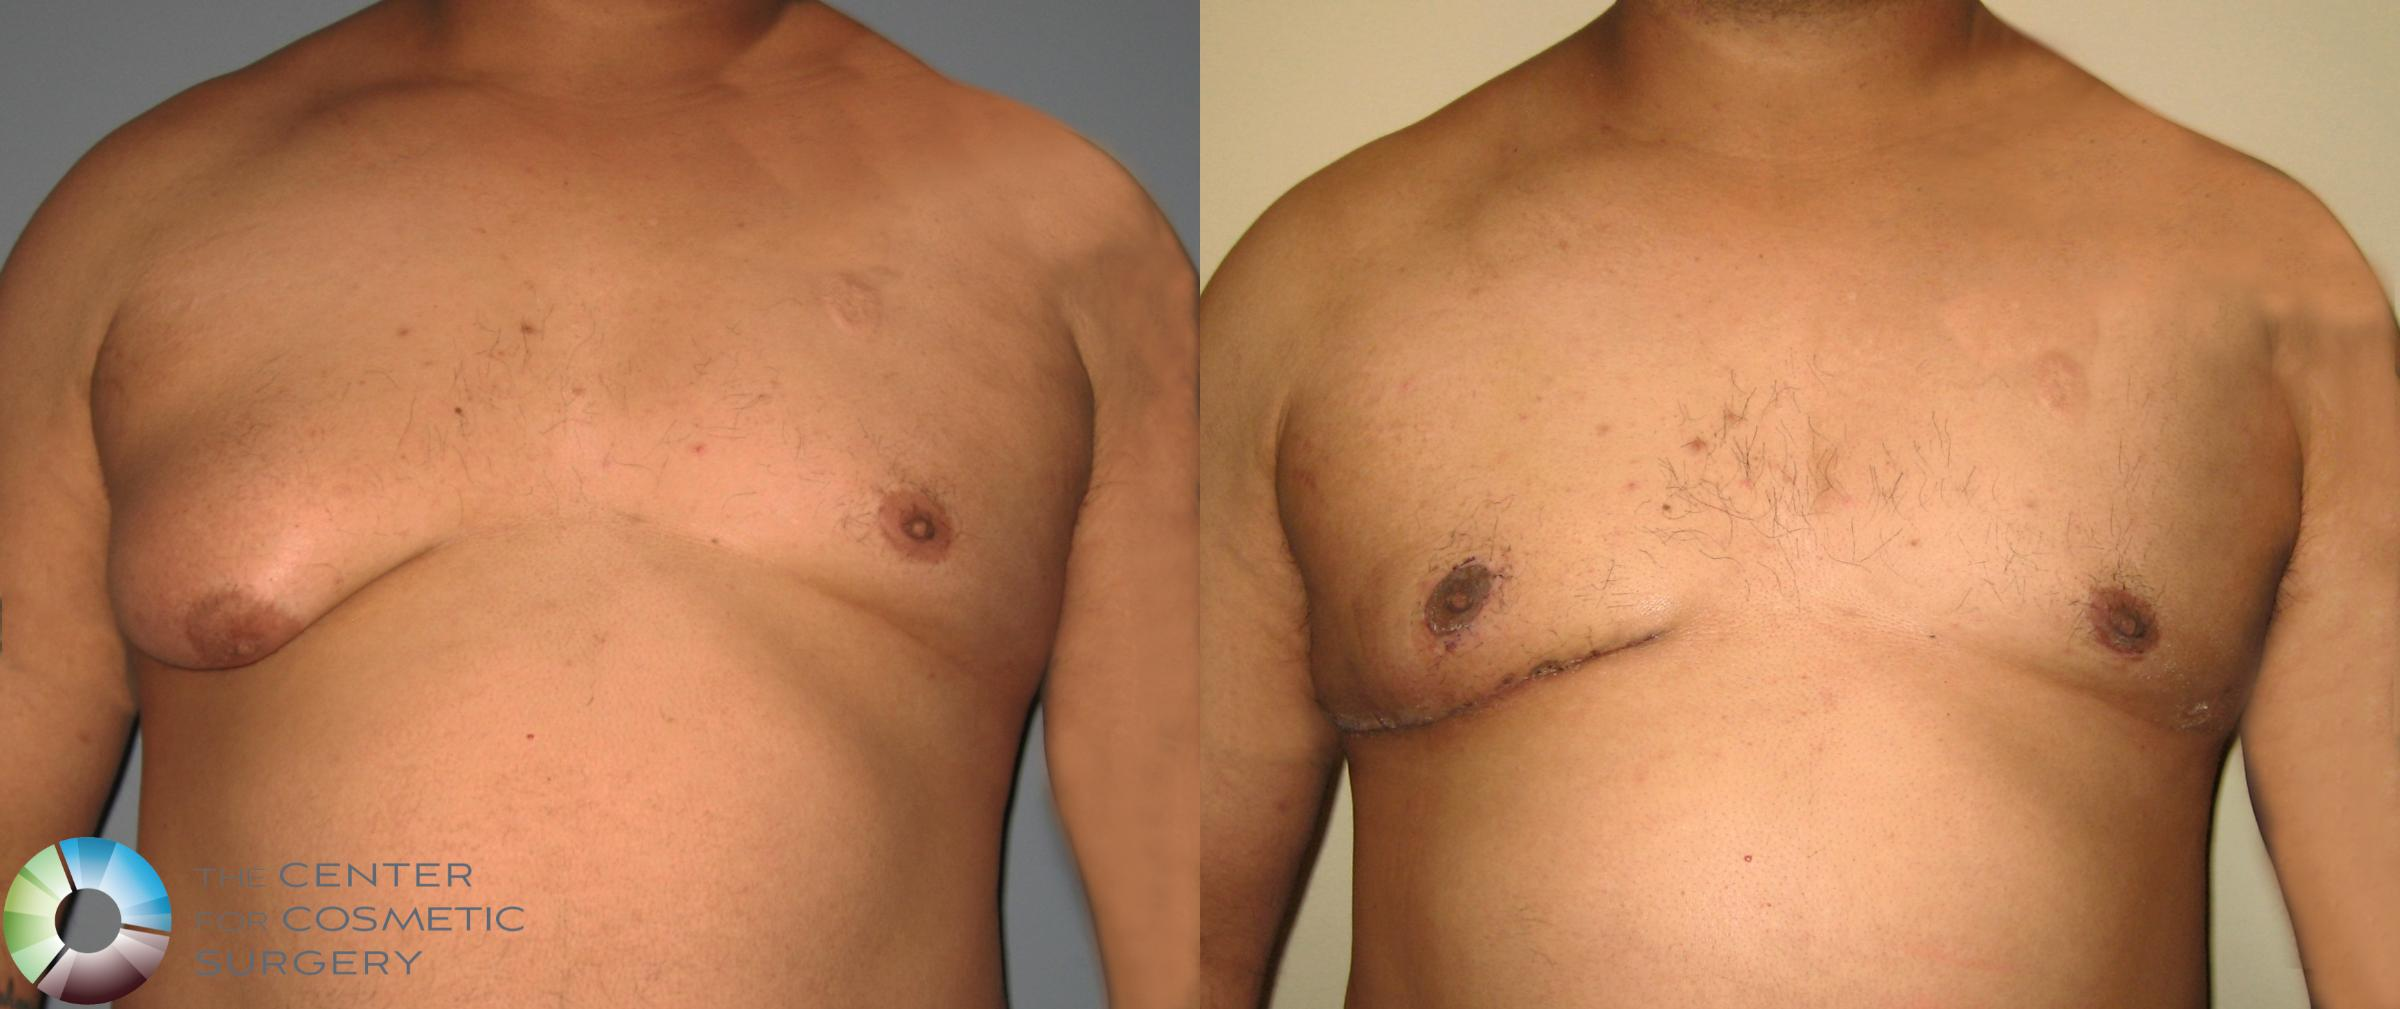 Male Breast Reduction Gynecomastia Surgery In Denver The